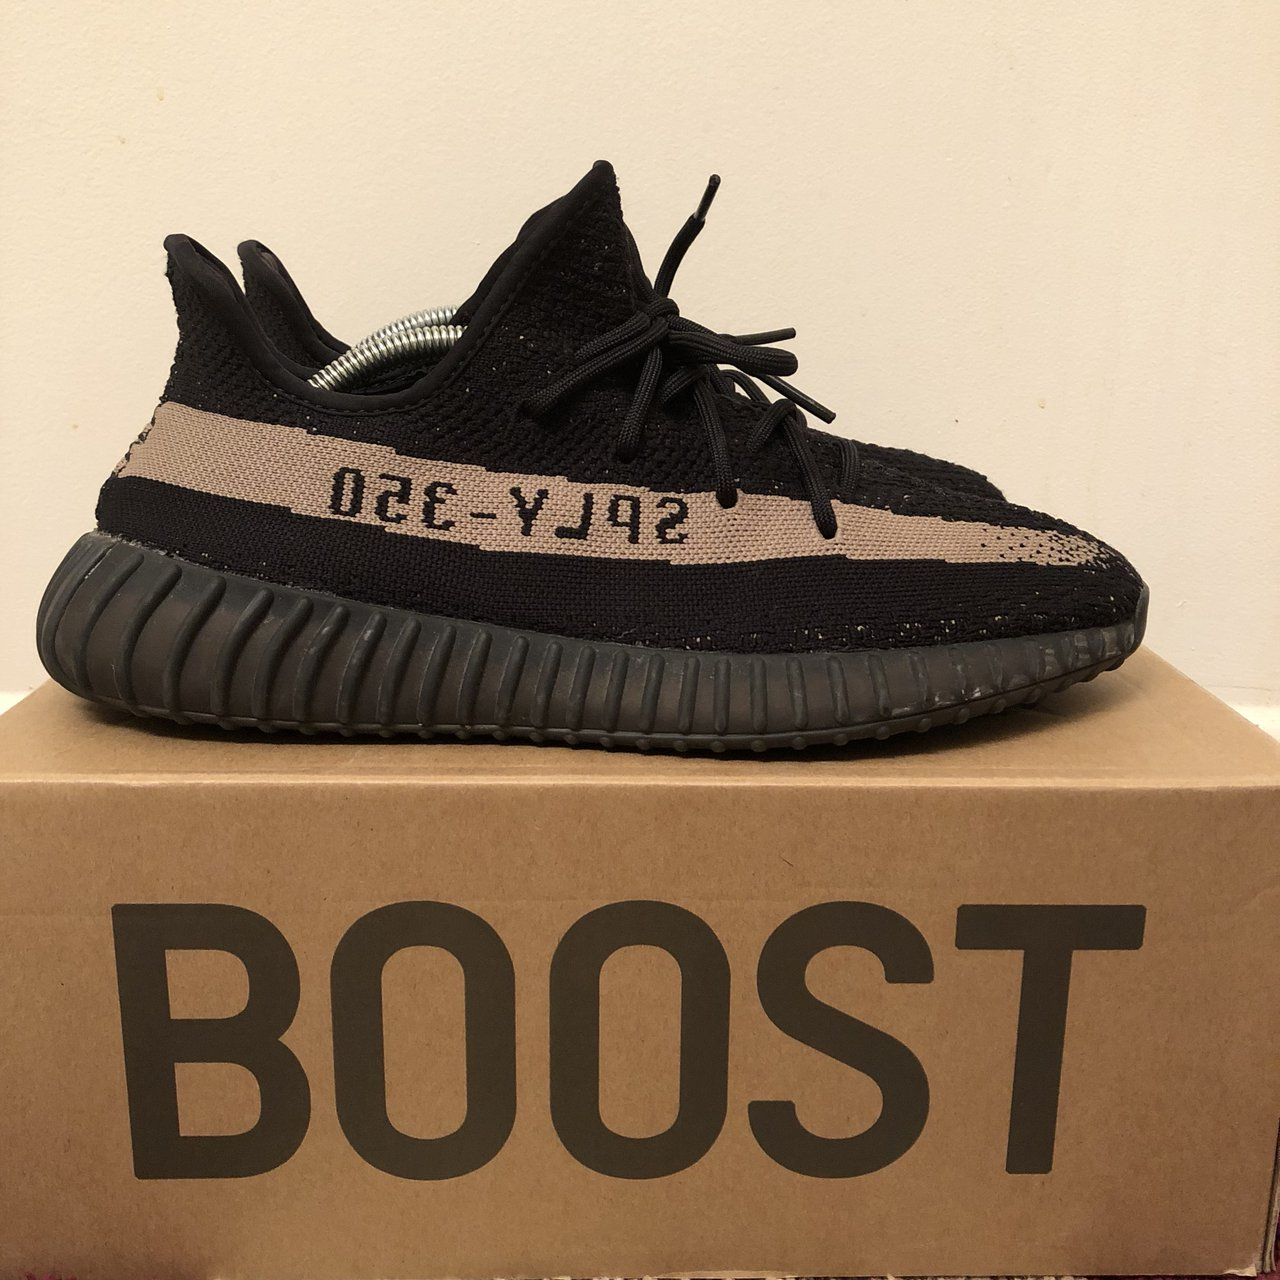 c99f401998a Adidas Yeezy Boost 350 V2 Olive Black Green BY9611 Size 10.5 - Depop